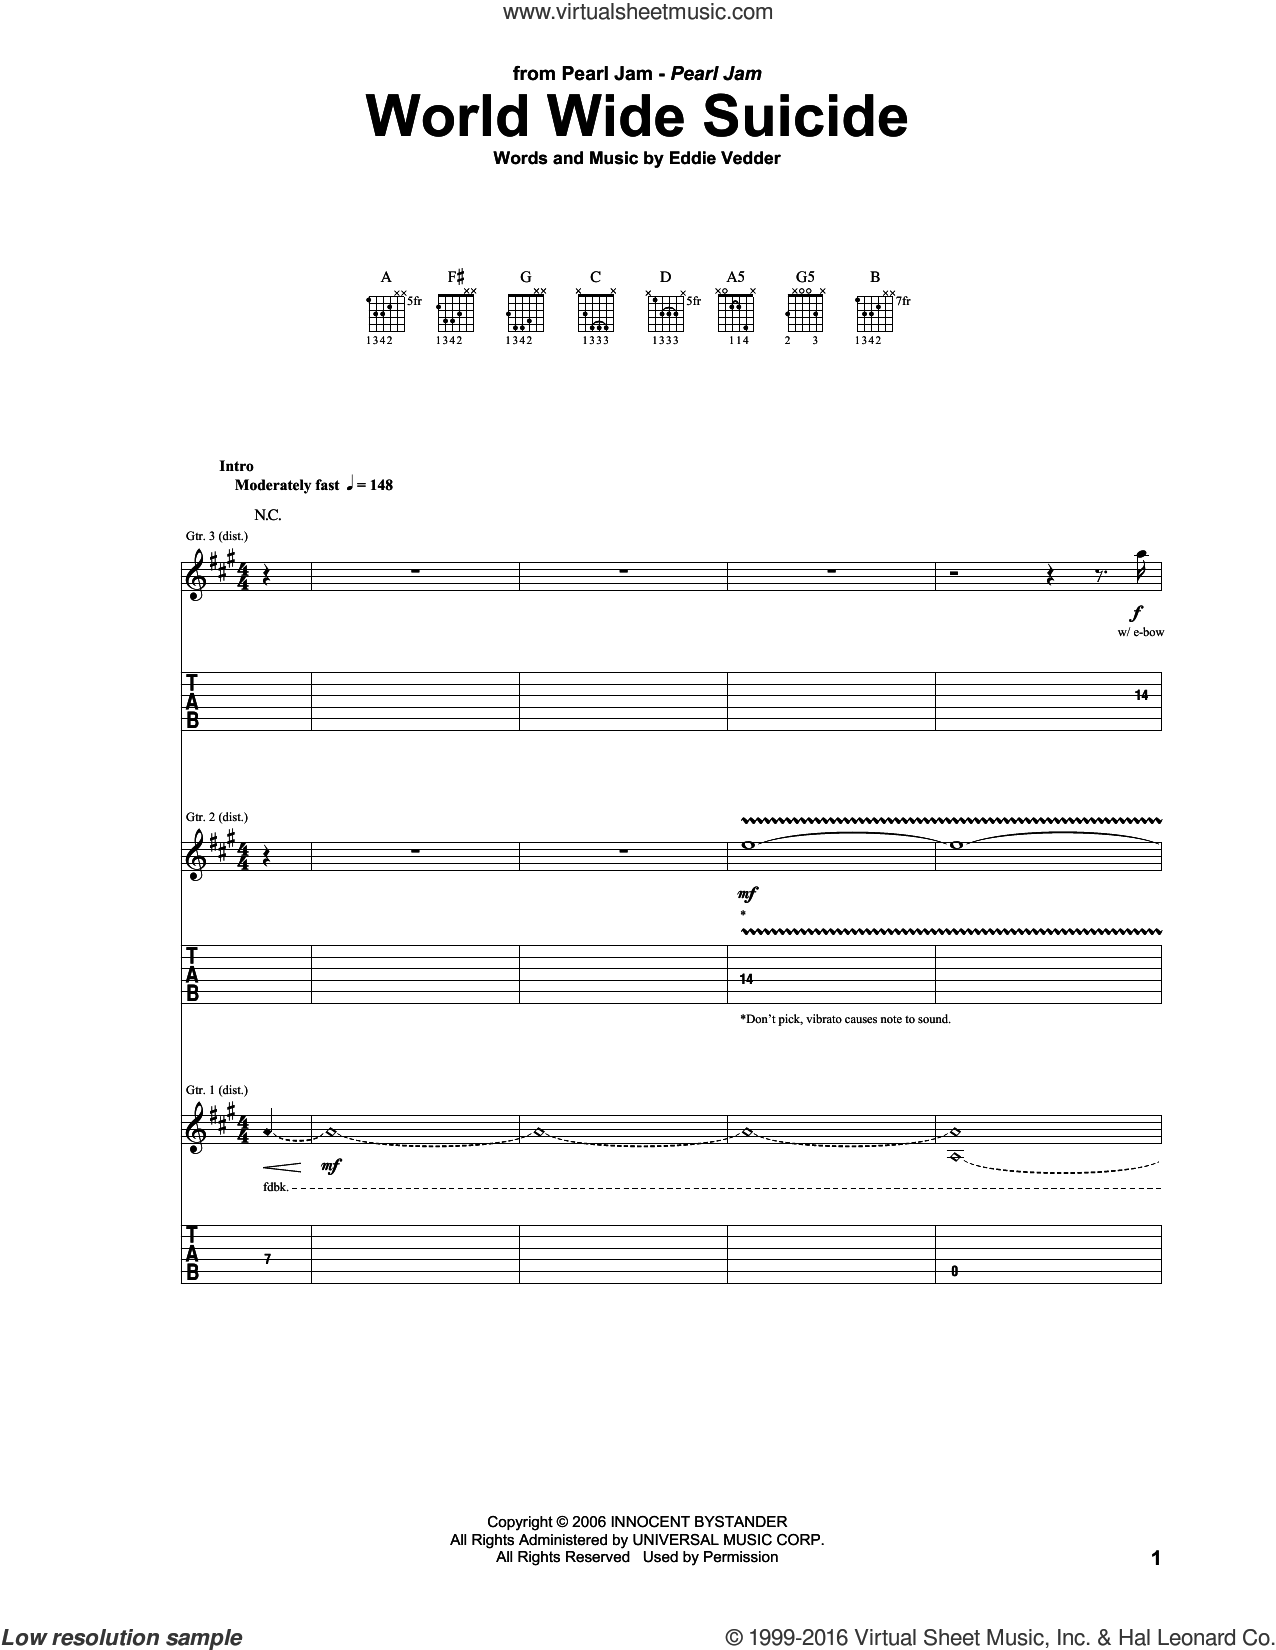 World Wide Suicide sheet music for guitar (tablature) by Eddie Vedder and Pearl Jam. Score Image Preview.